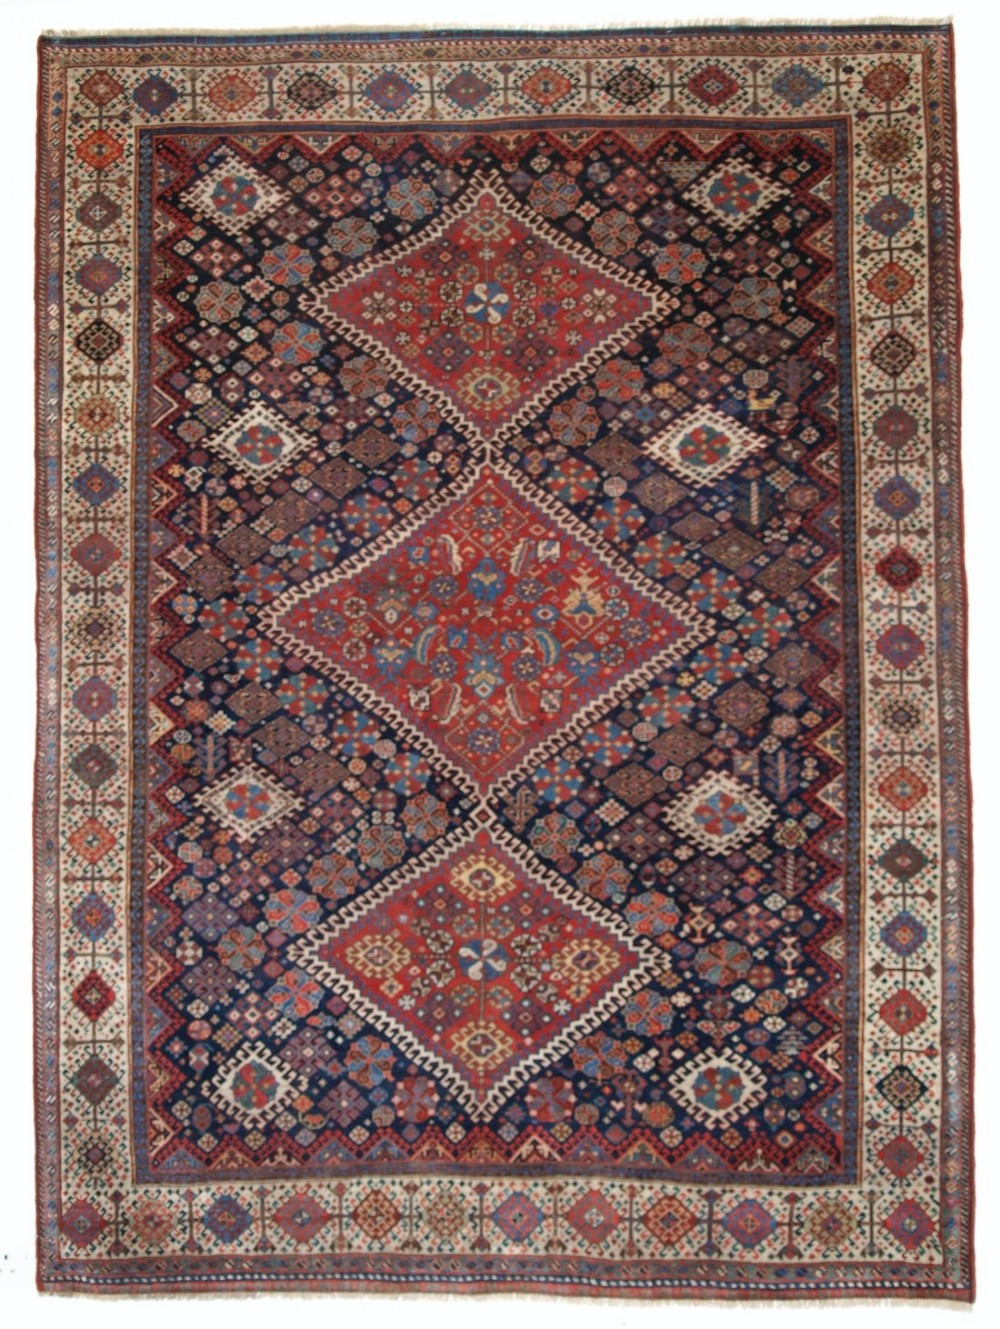 antique qashqai rug shekarlu border triple medallion superb circa 1860